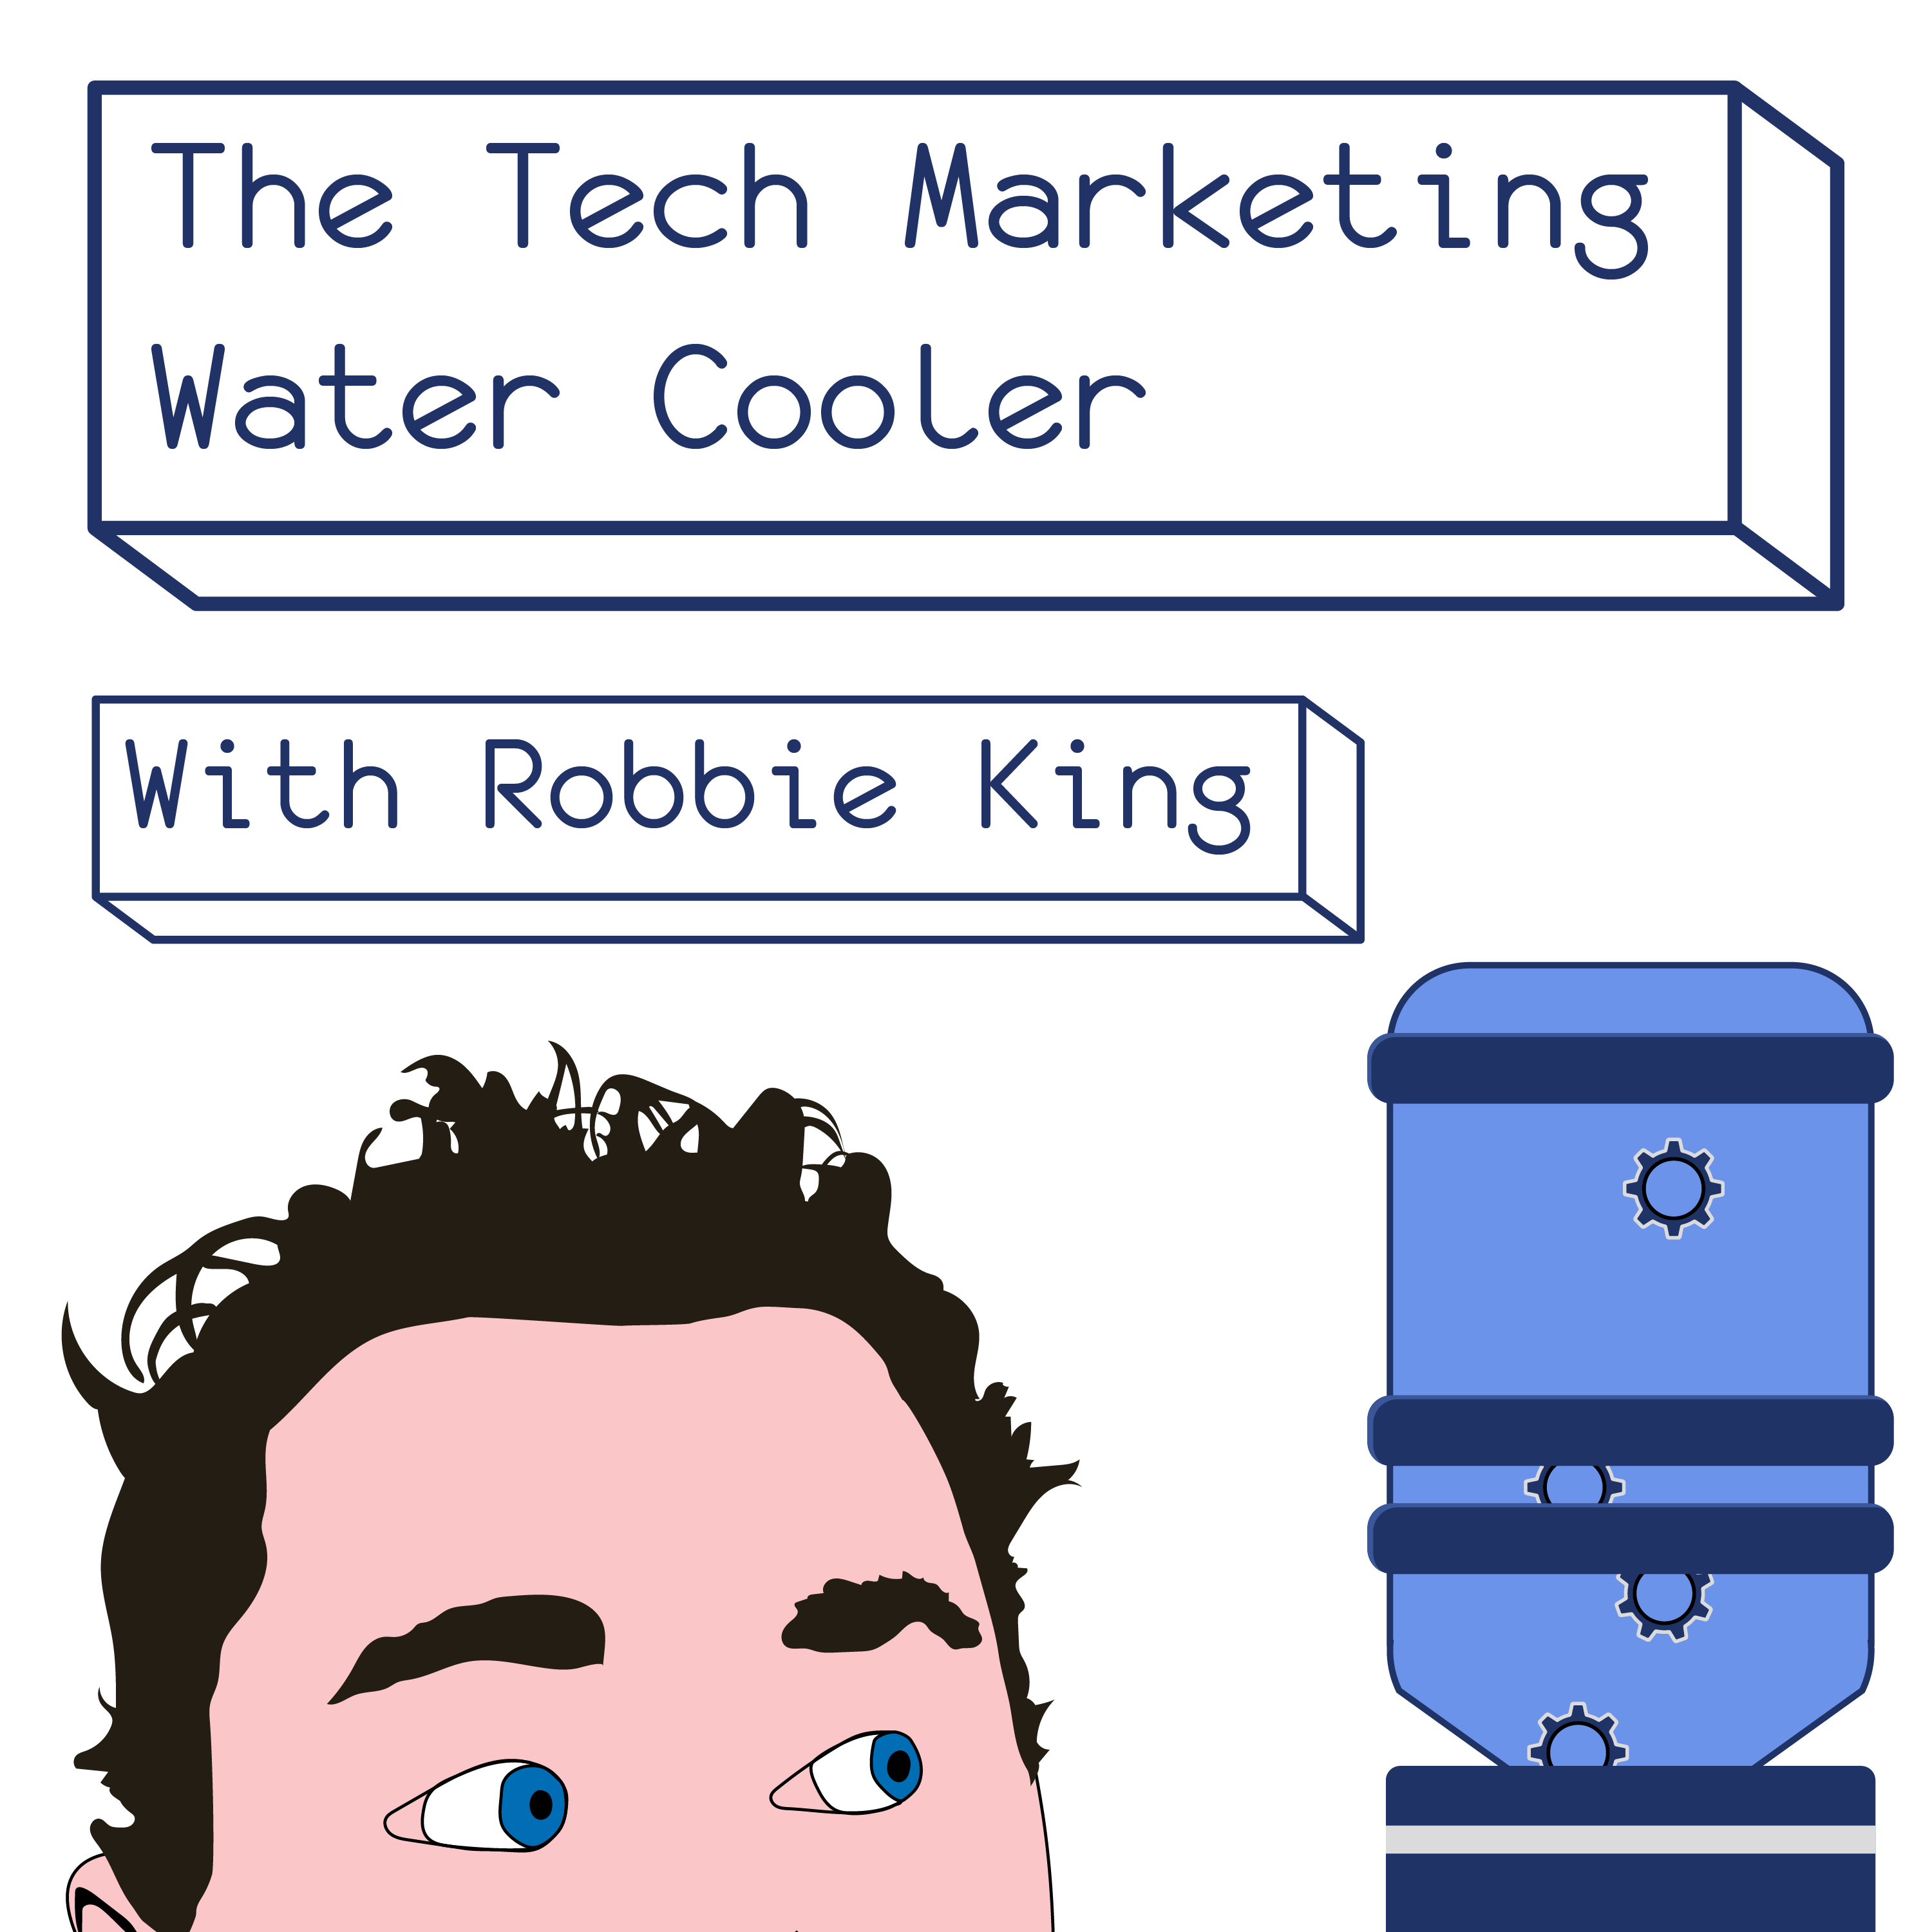 The Tech Marketing Water Cooler. Season 2, Episode 4; A Conversation With Growth Marketer and Marketing Consultancy Founder David Odier